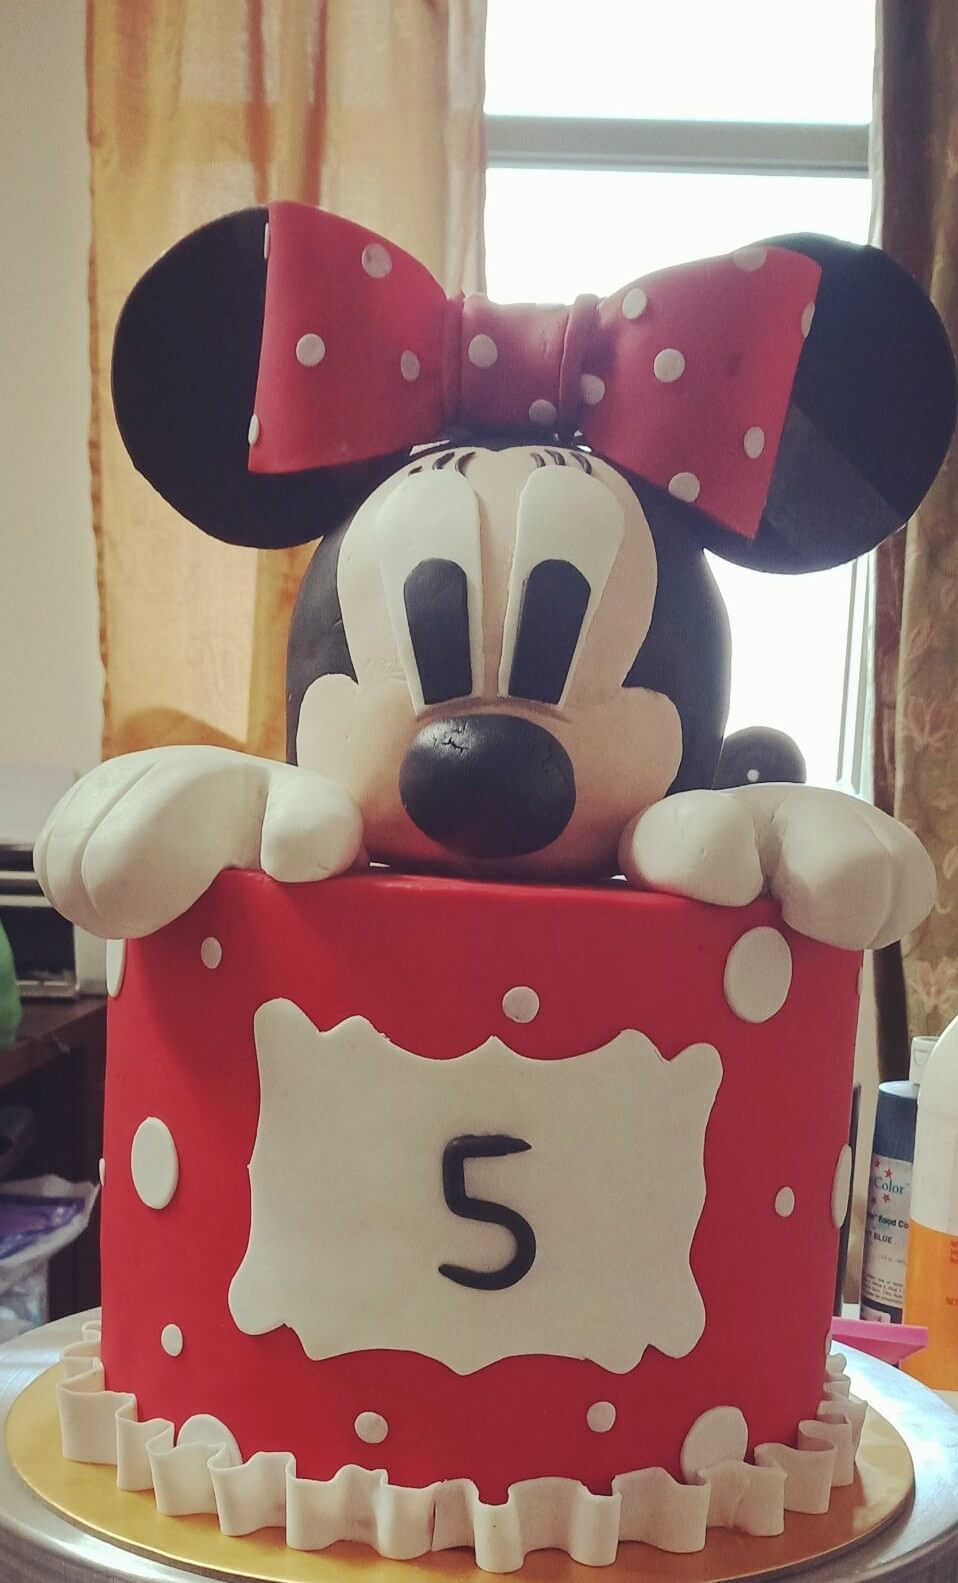 minne mouse cake hyderabad,fondant cake for girls,fondant cakes hyderabad, birthday cakes hyderabad